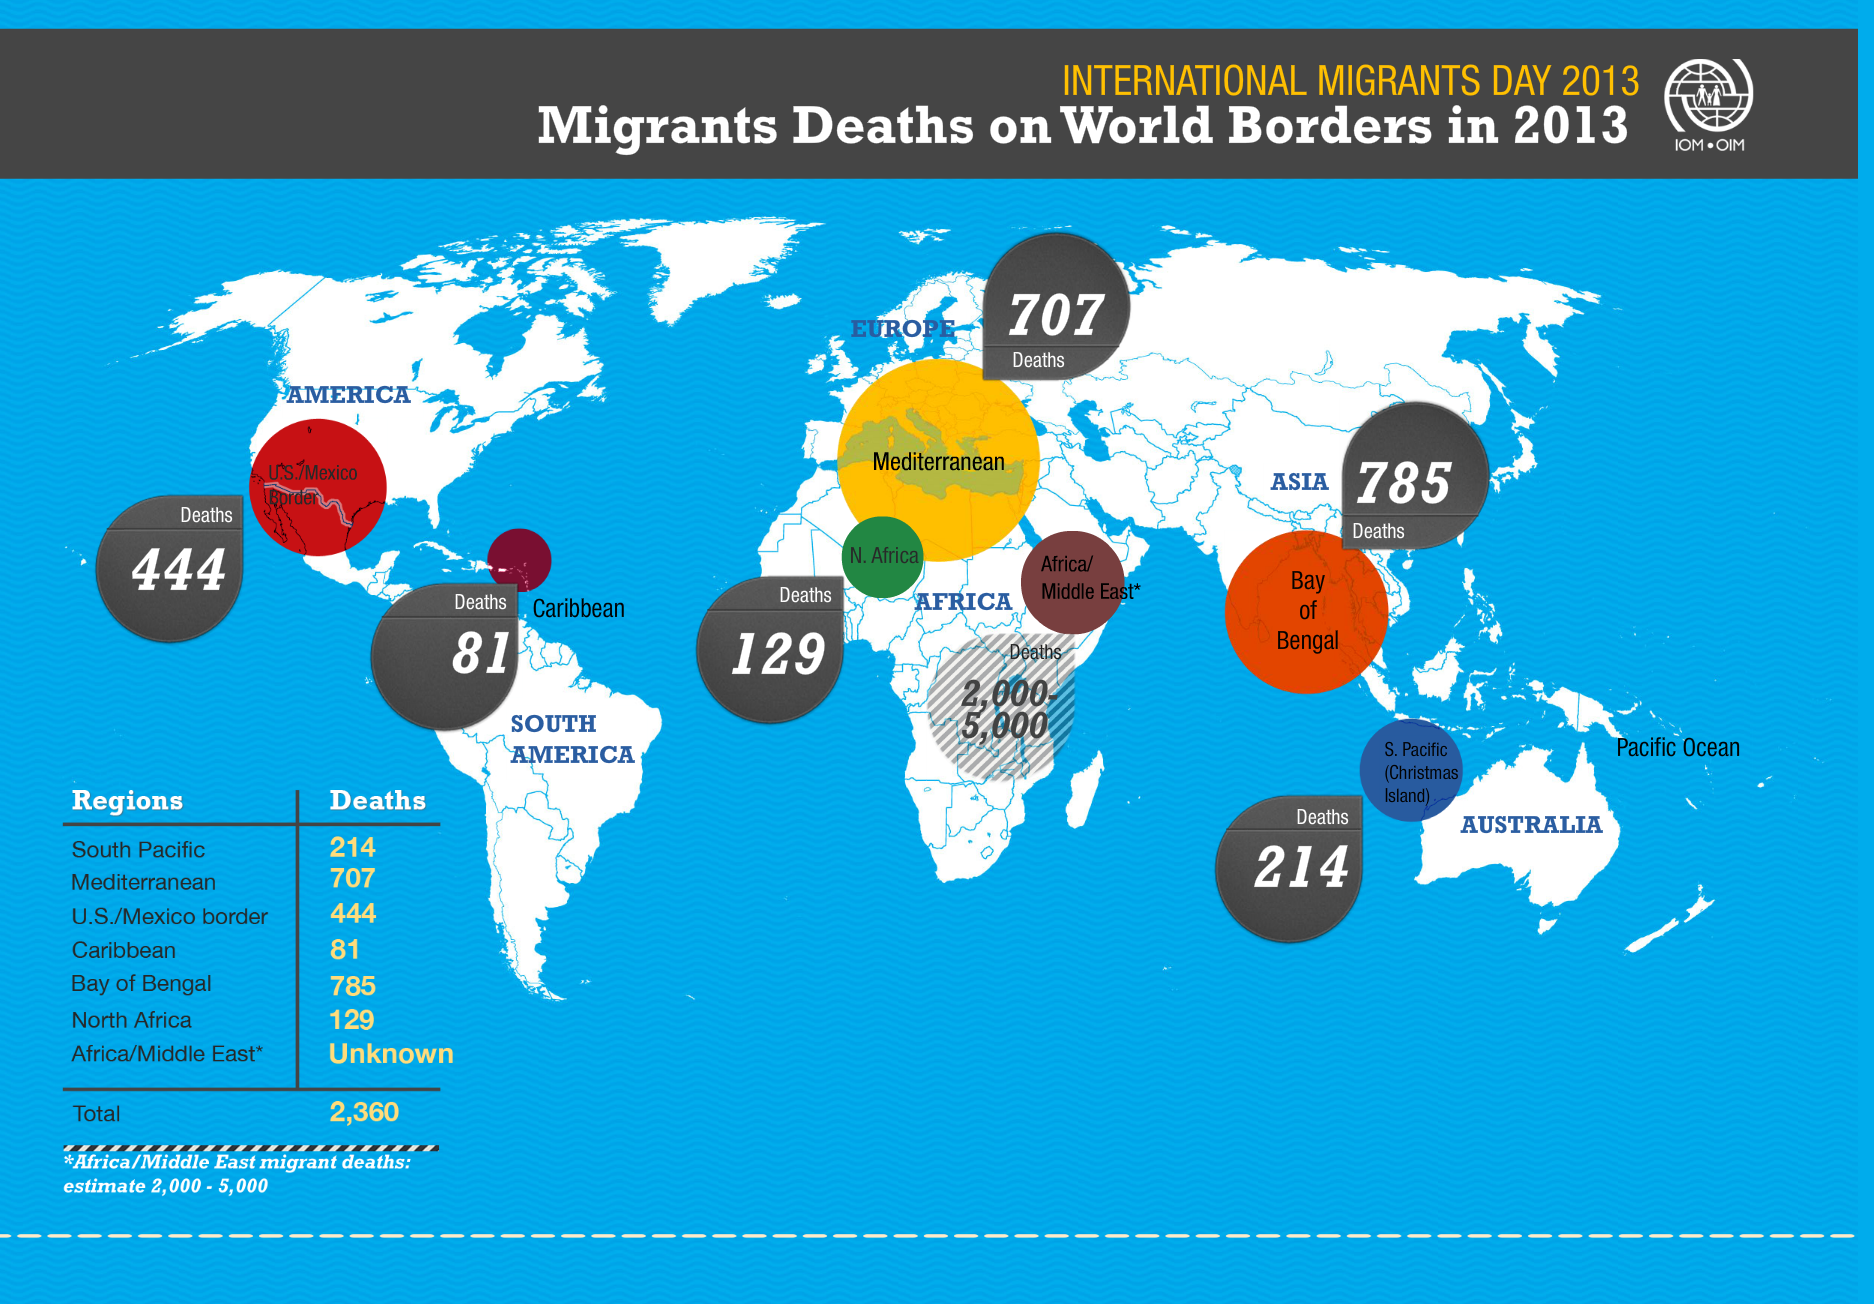 Source: International Organization for Migration